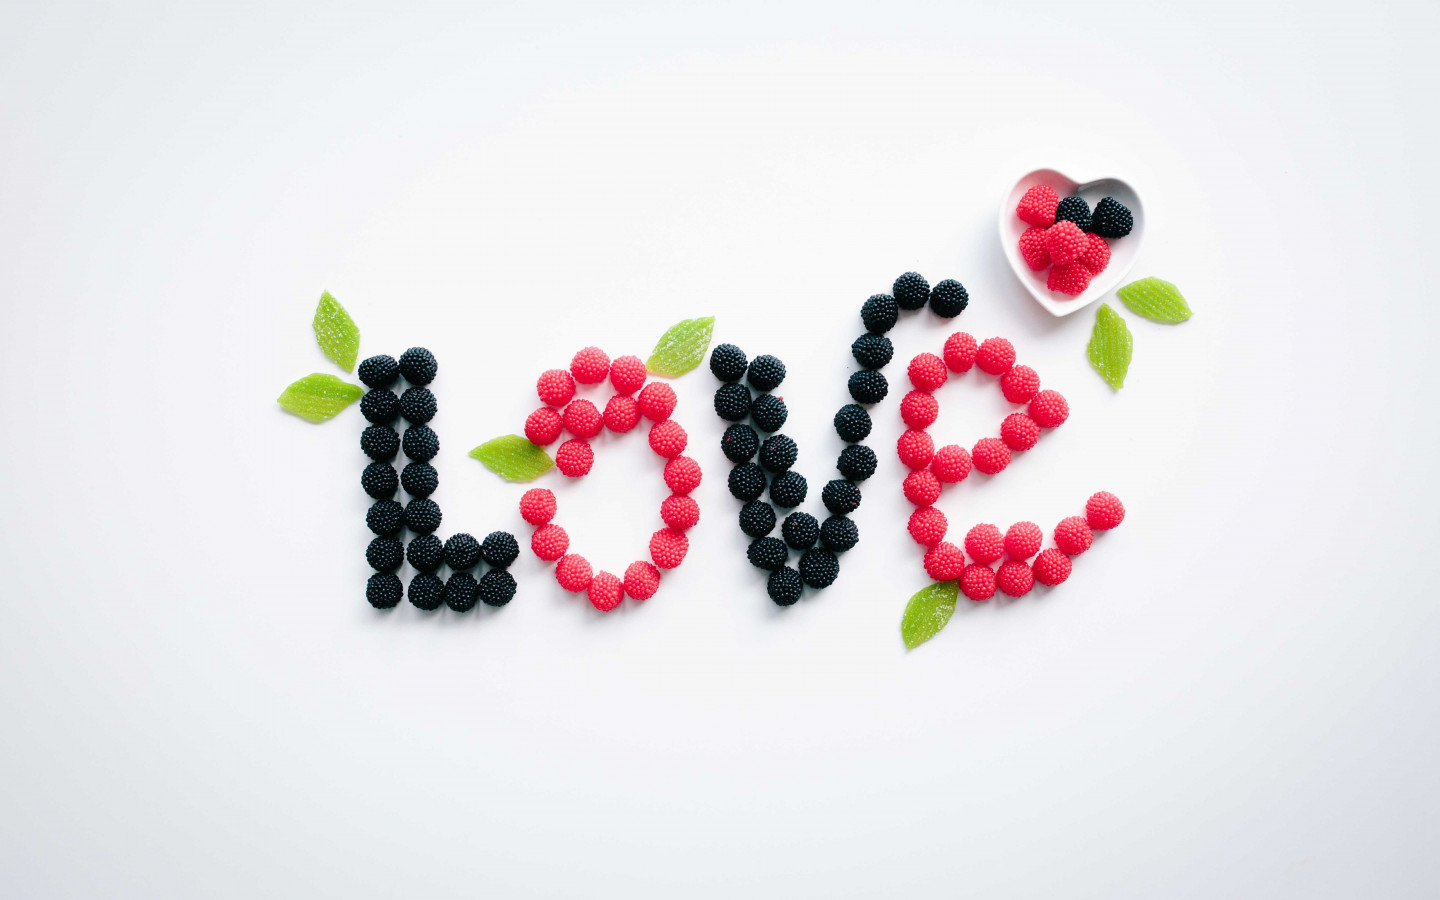 Love message with fruits | 1440x900 wallpaper